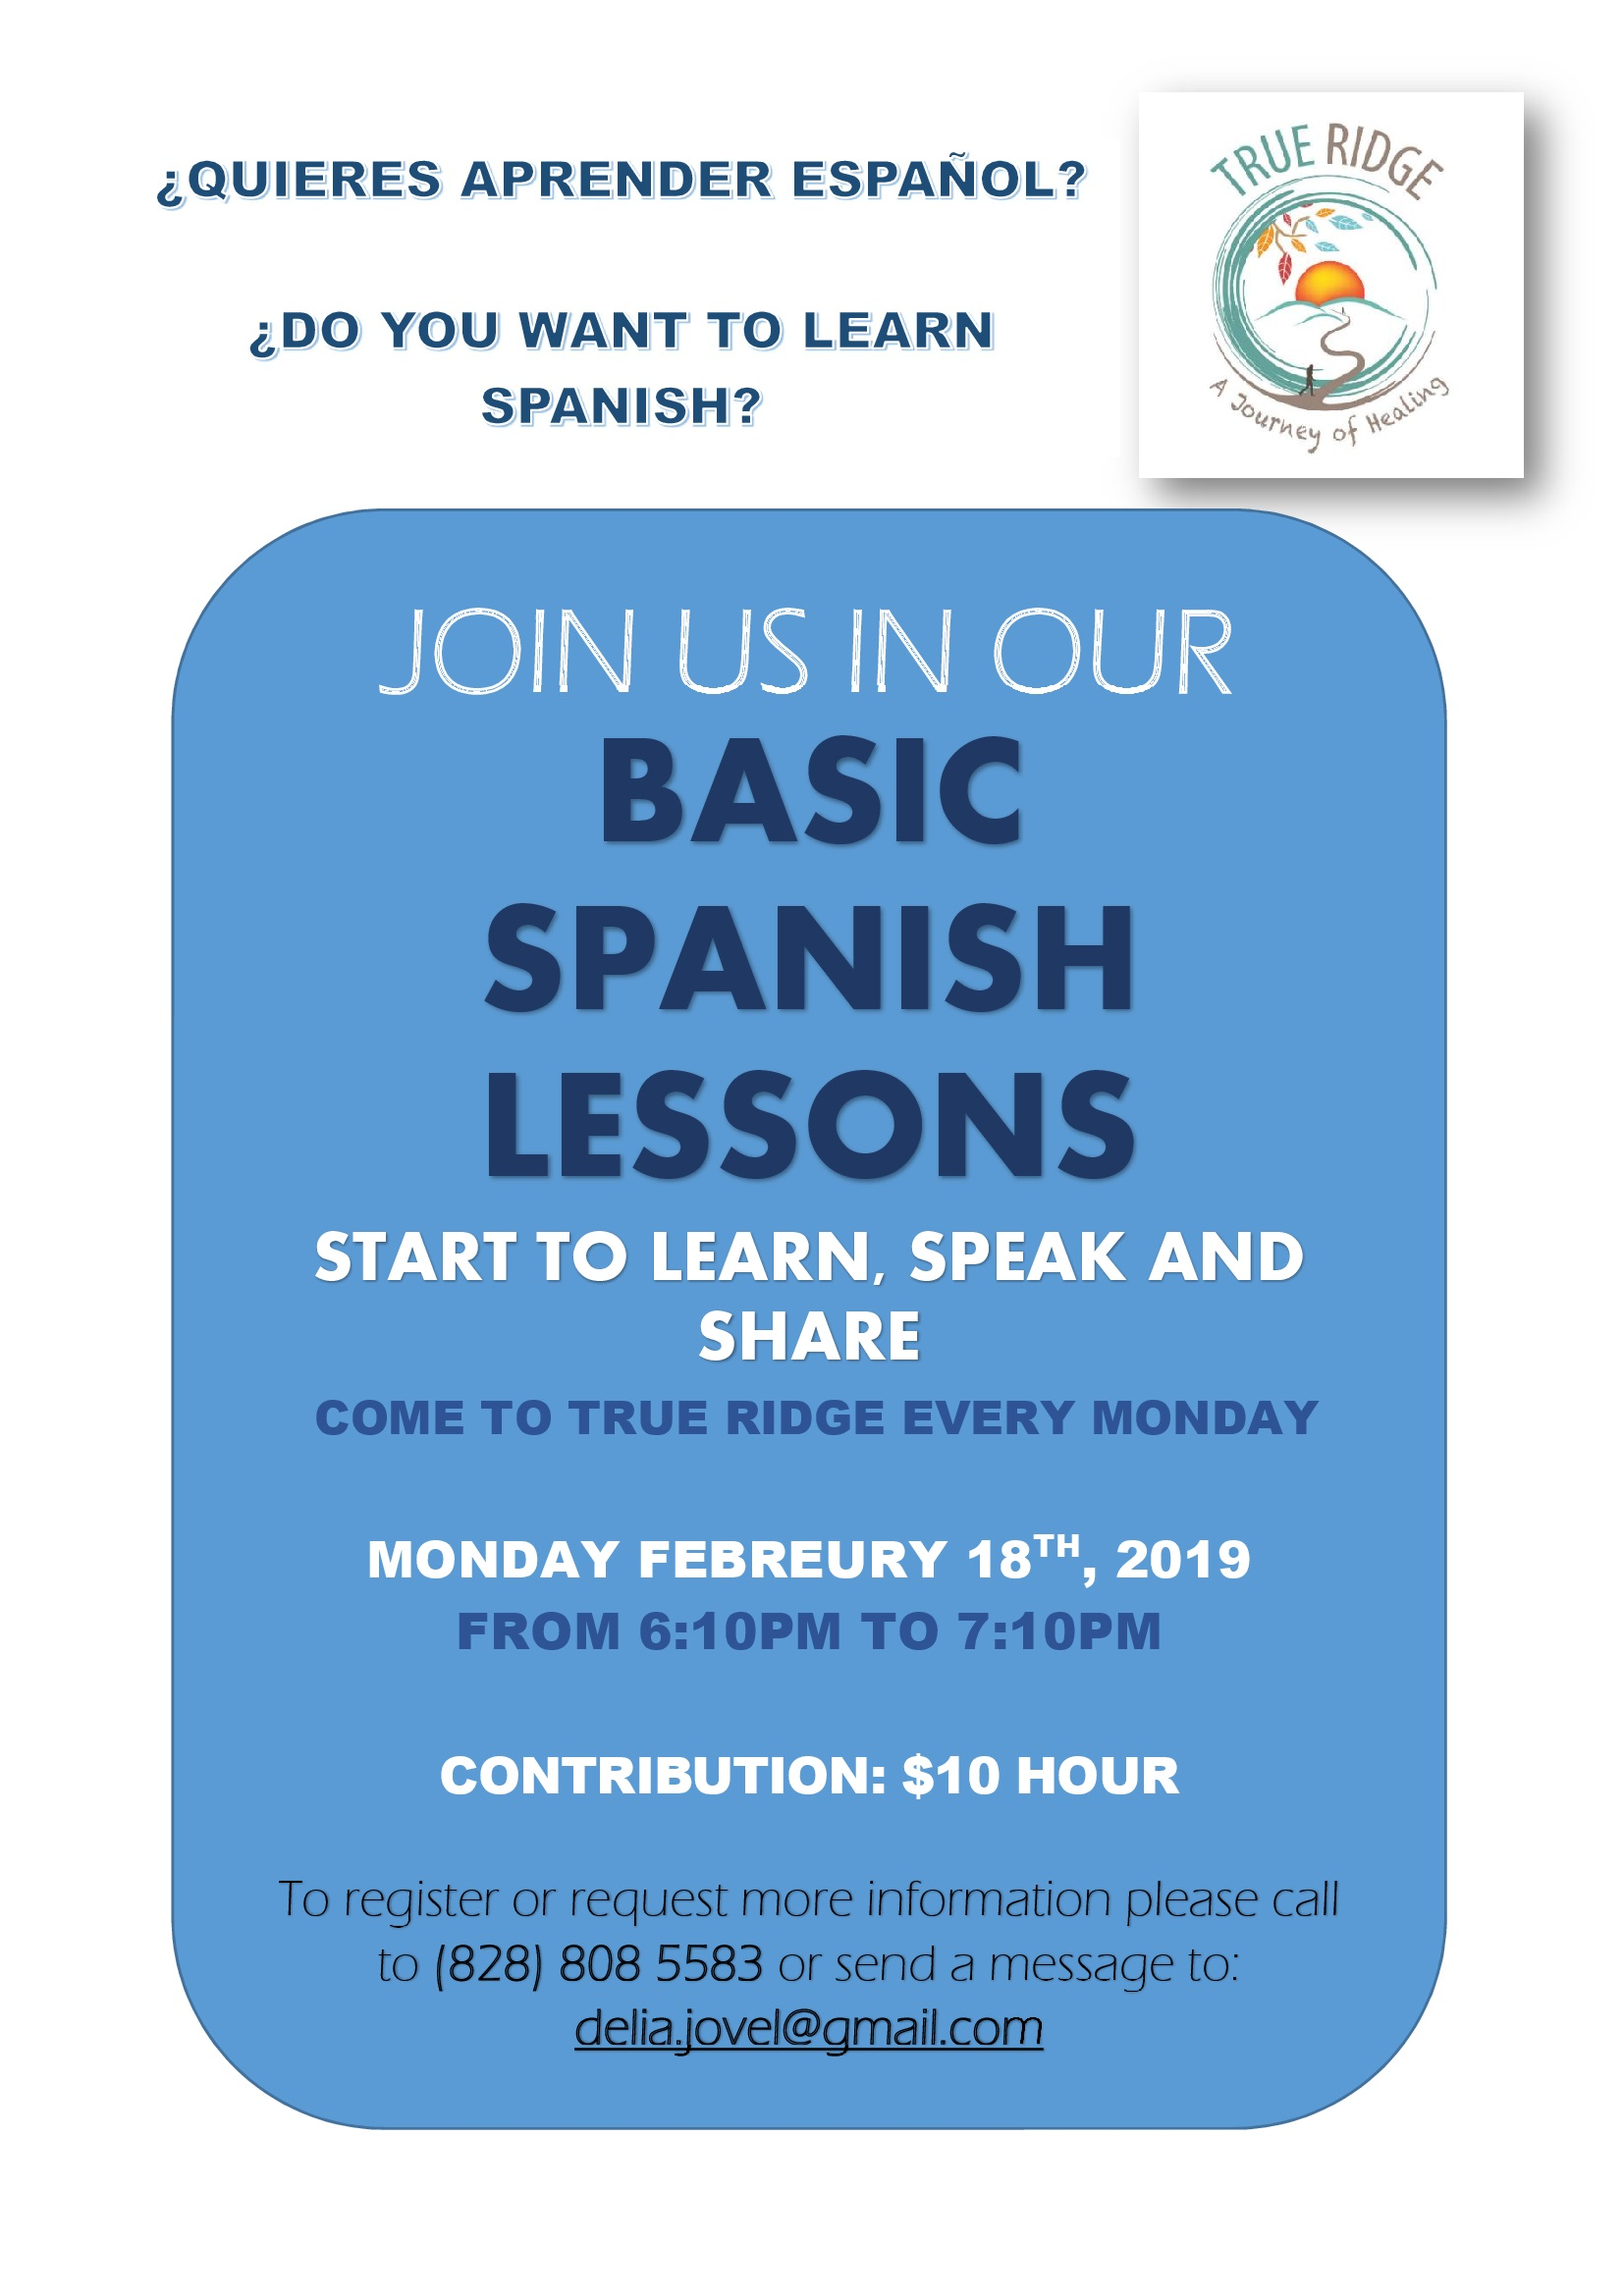 This is a good opportunity to learn basic Spanish and meet some of our neighbors at True Ridge.